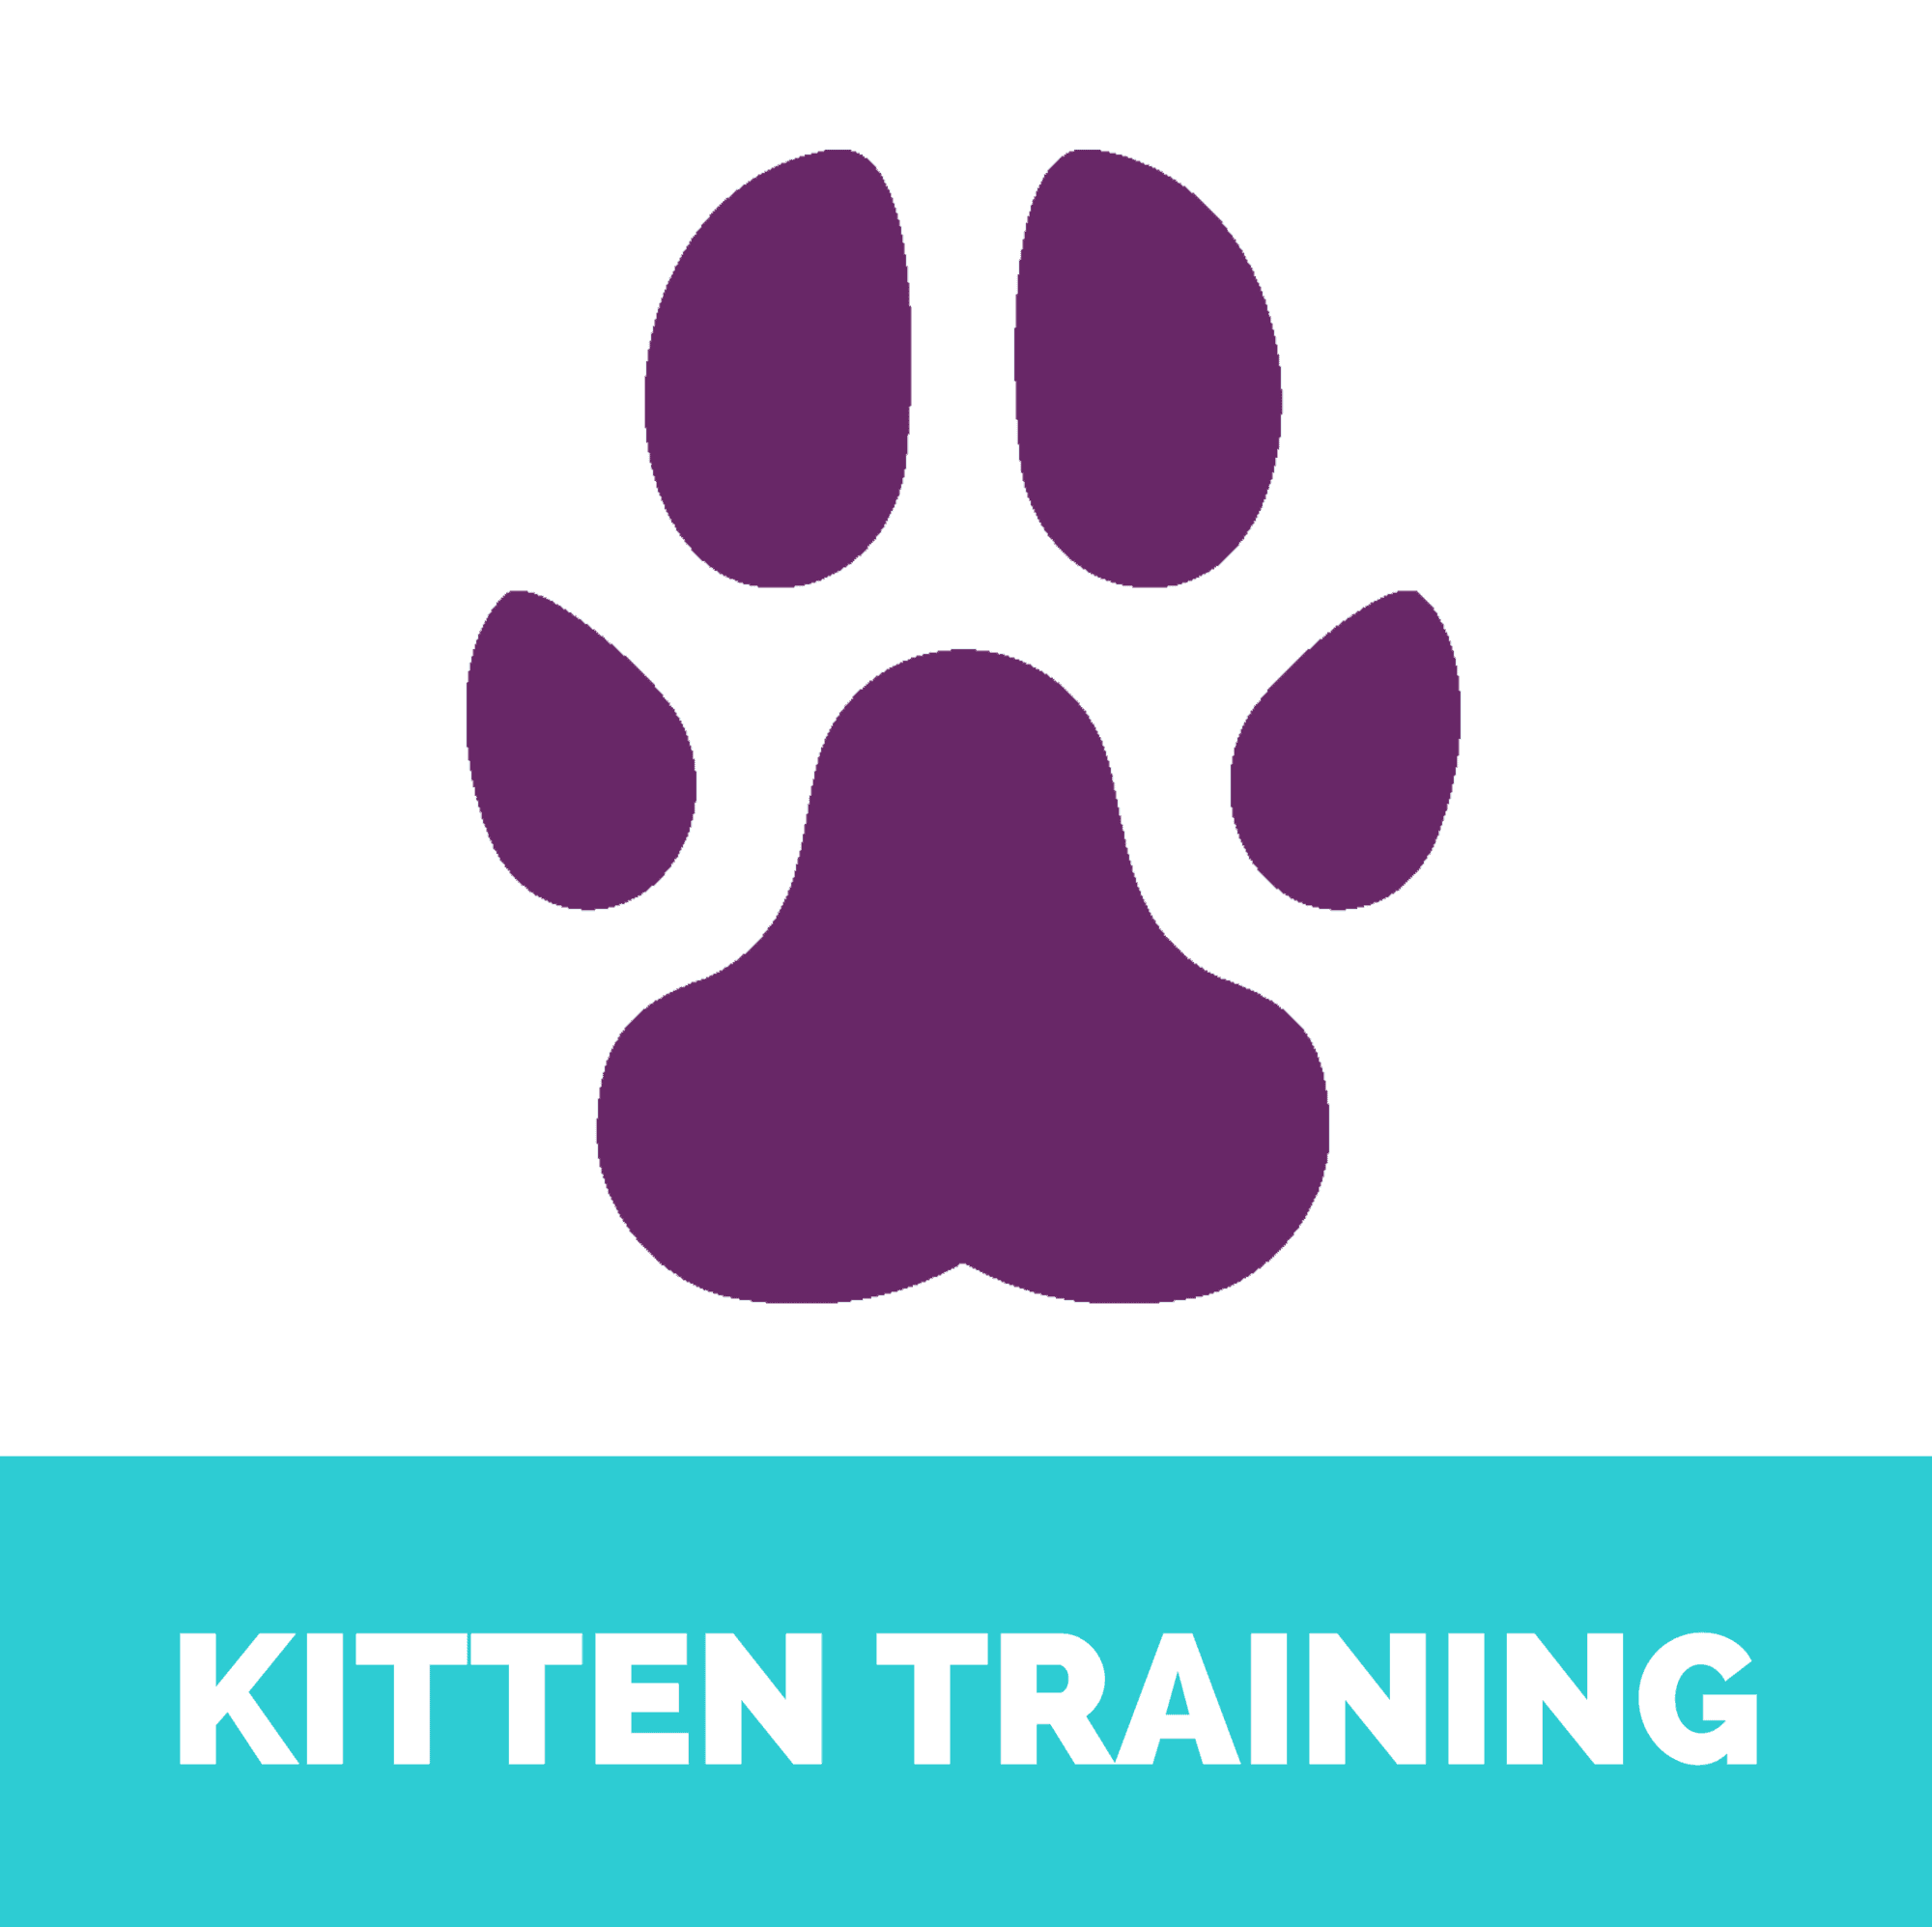 Kitten training